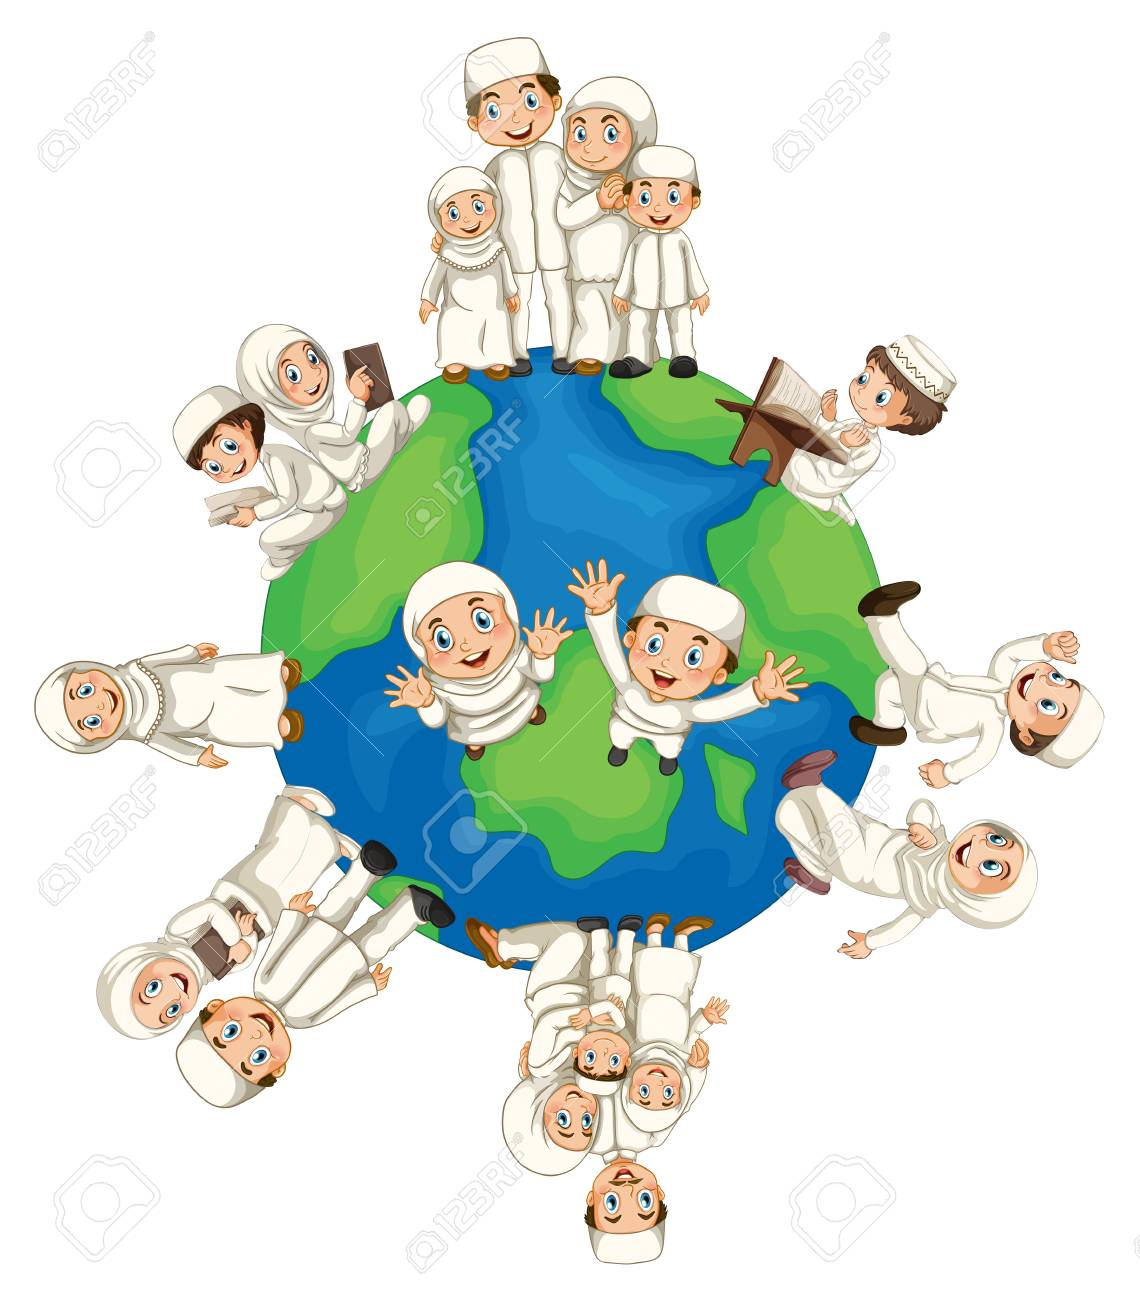 Muslim People Around The World Illustration Royalty Free Cliparts ...